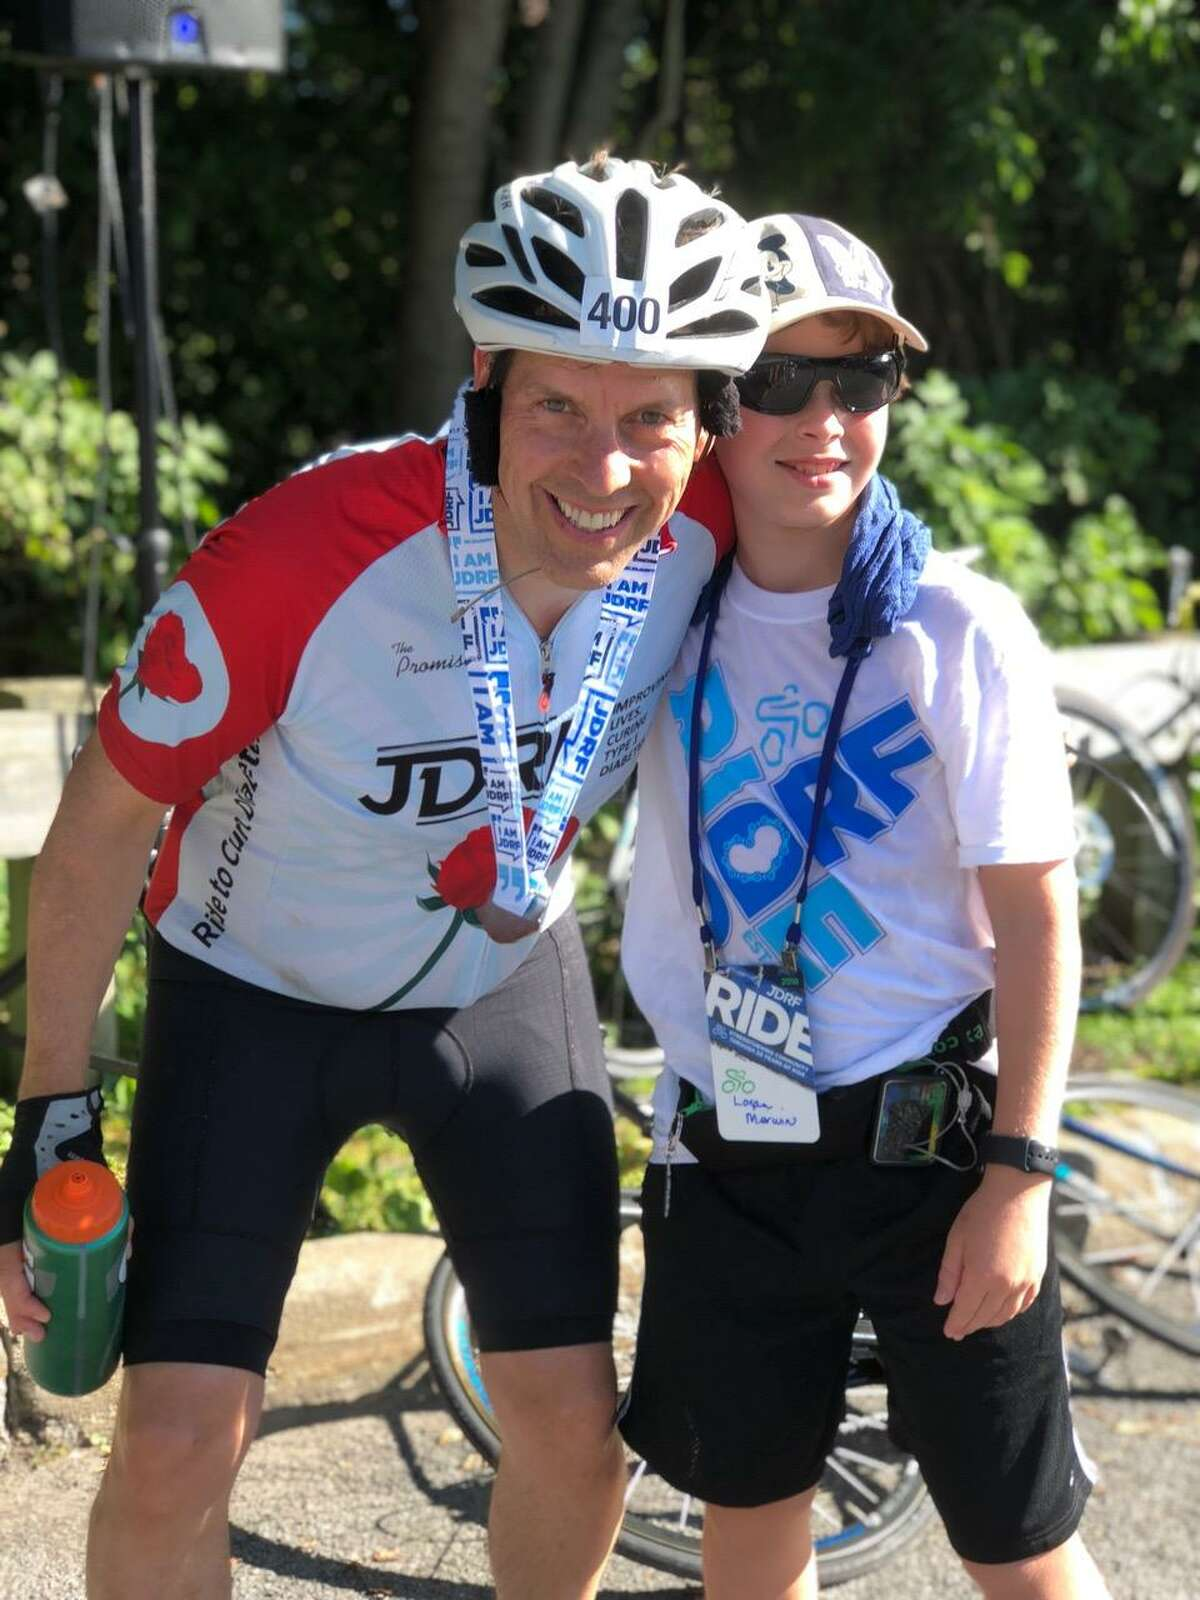 Logan Merwin, right, is shown with Juvenile Diabetes Research Foundation President and CEO Derek Rapp.